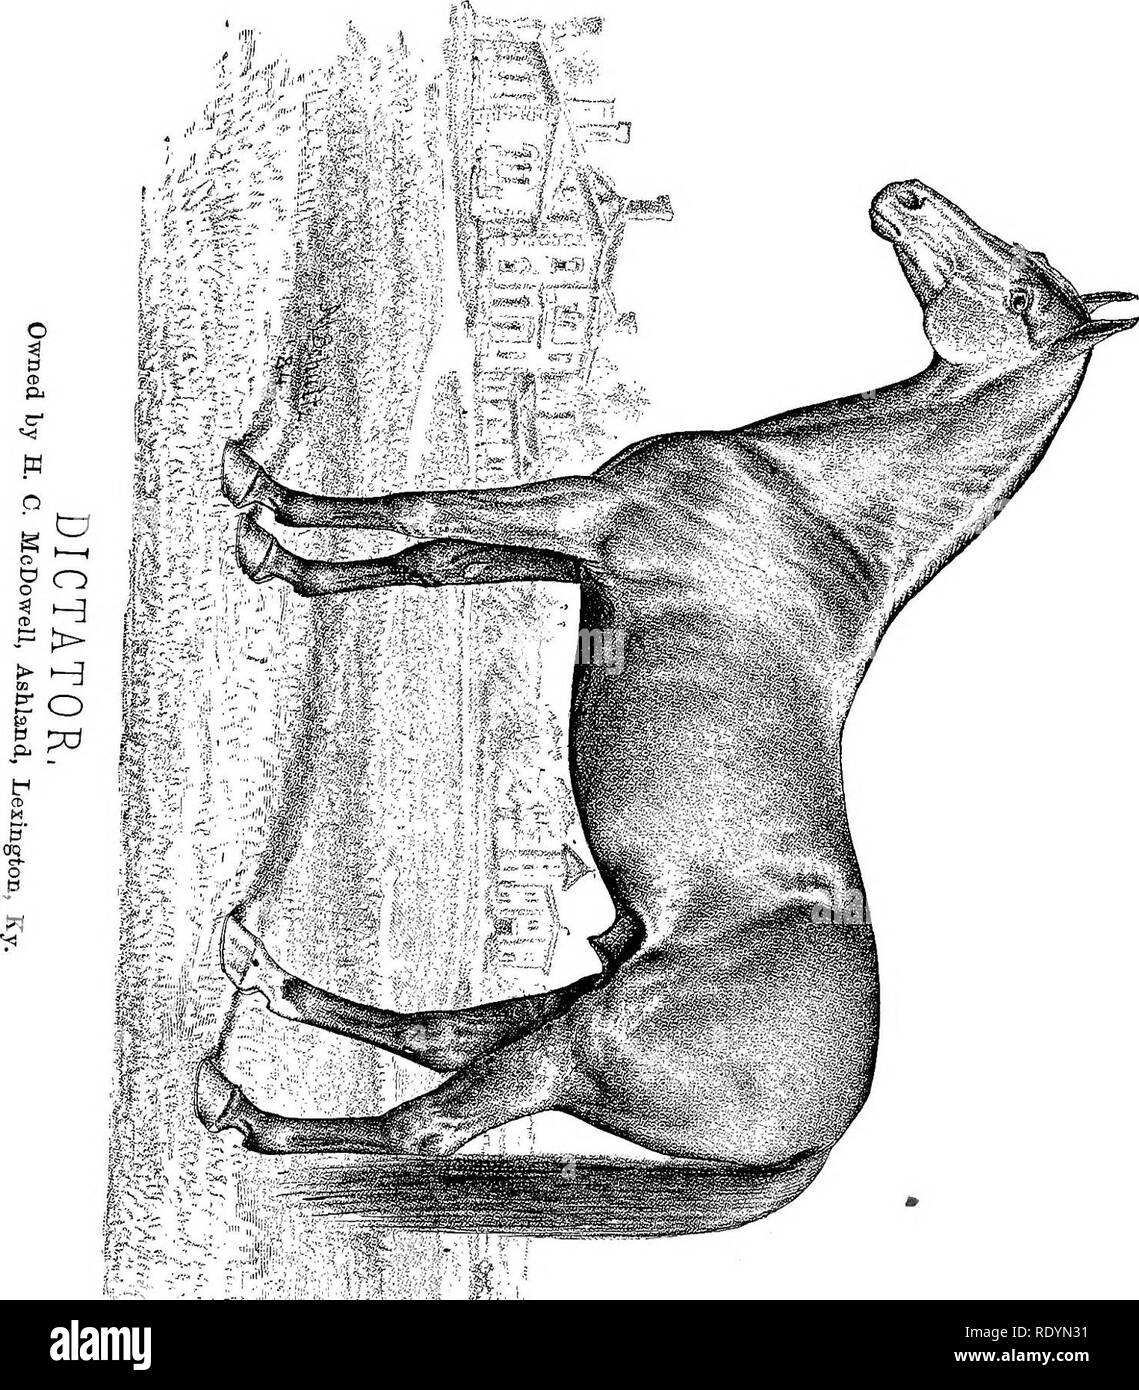 . Chester's Complete trotting and pacing record, containing summaries of all races trotted or paced in the United States or Canada, from the earliest dates to the close of 1883. Horse-racing. . Please note that these images are extracted from scanned page images that may have been digitally enhanced for readability - coloration and appearance of these illustrations may not perfectly resemble the original work.. Chester, Walter T. New York, The Compiler - Stock Image